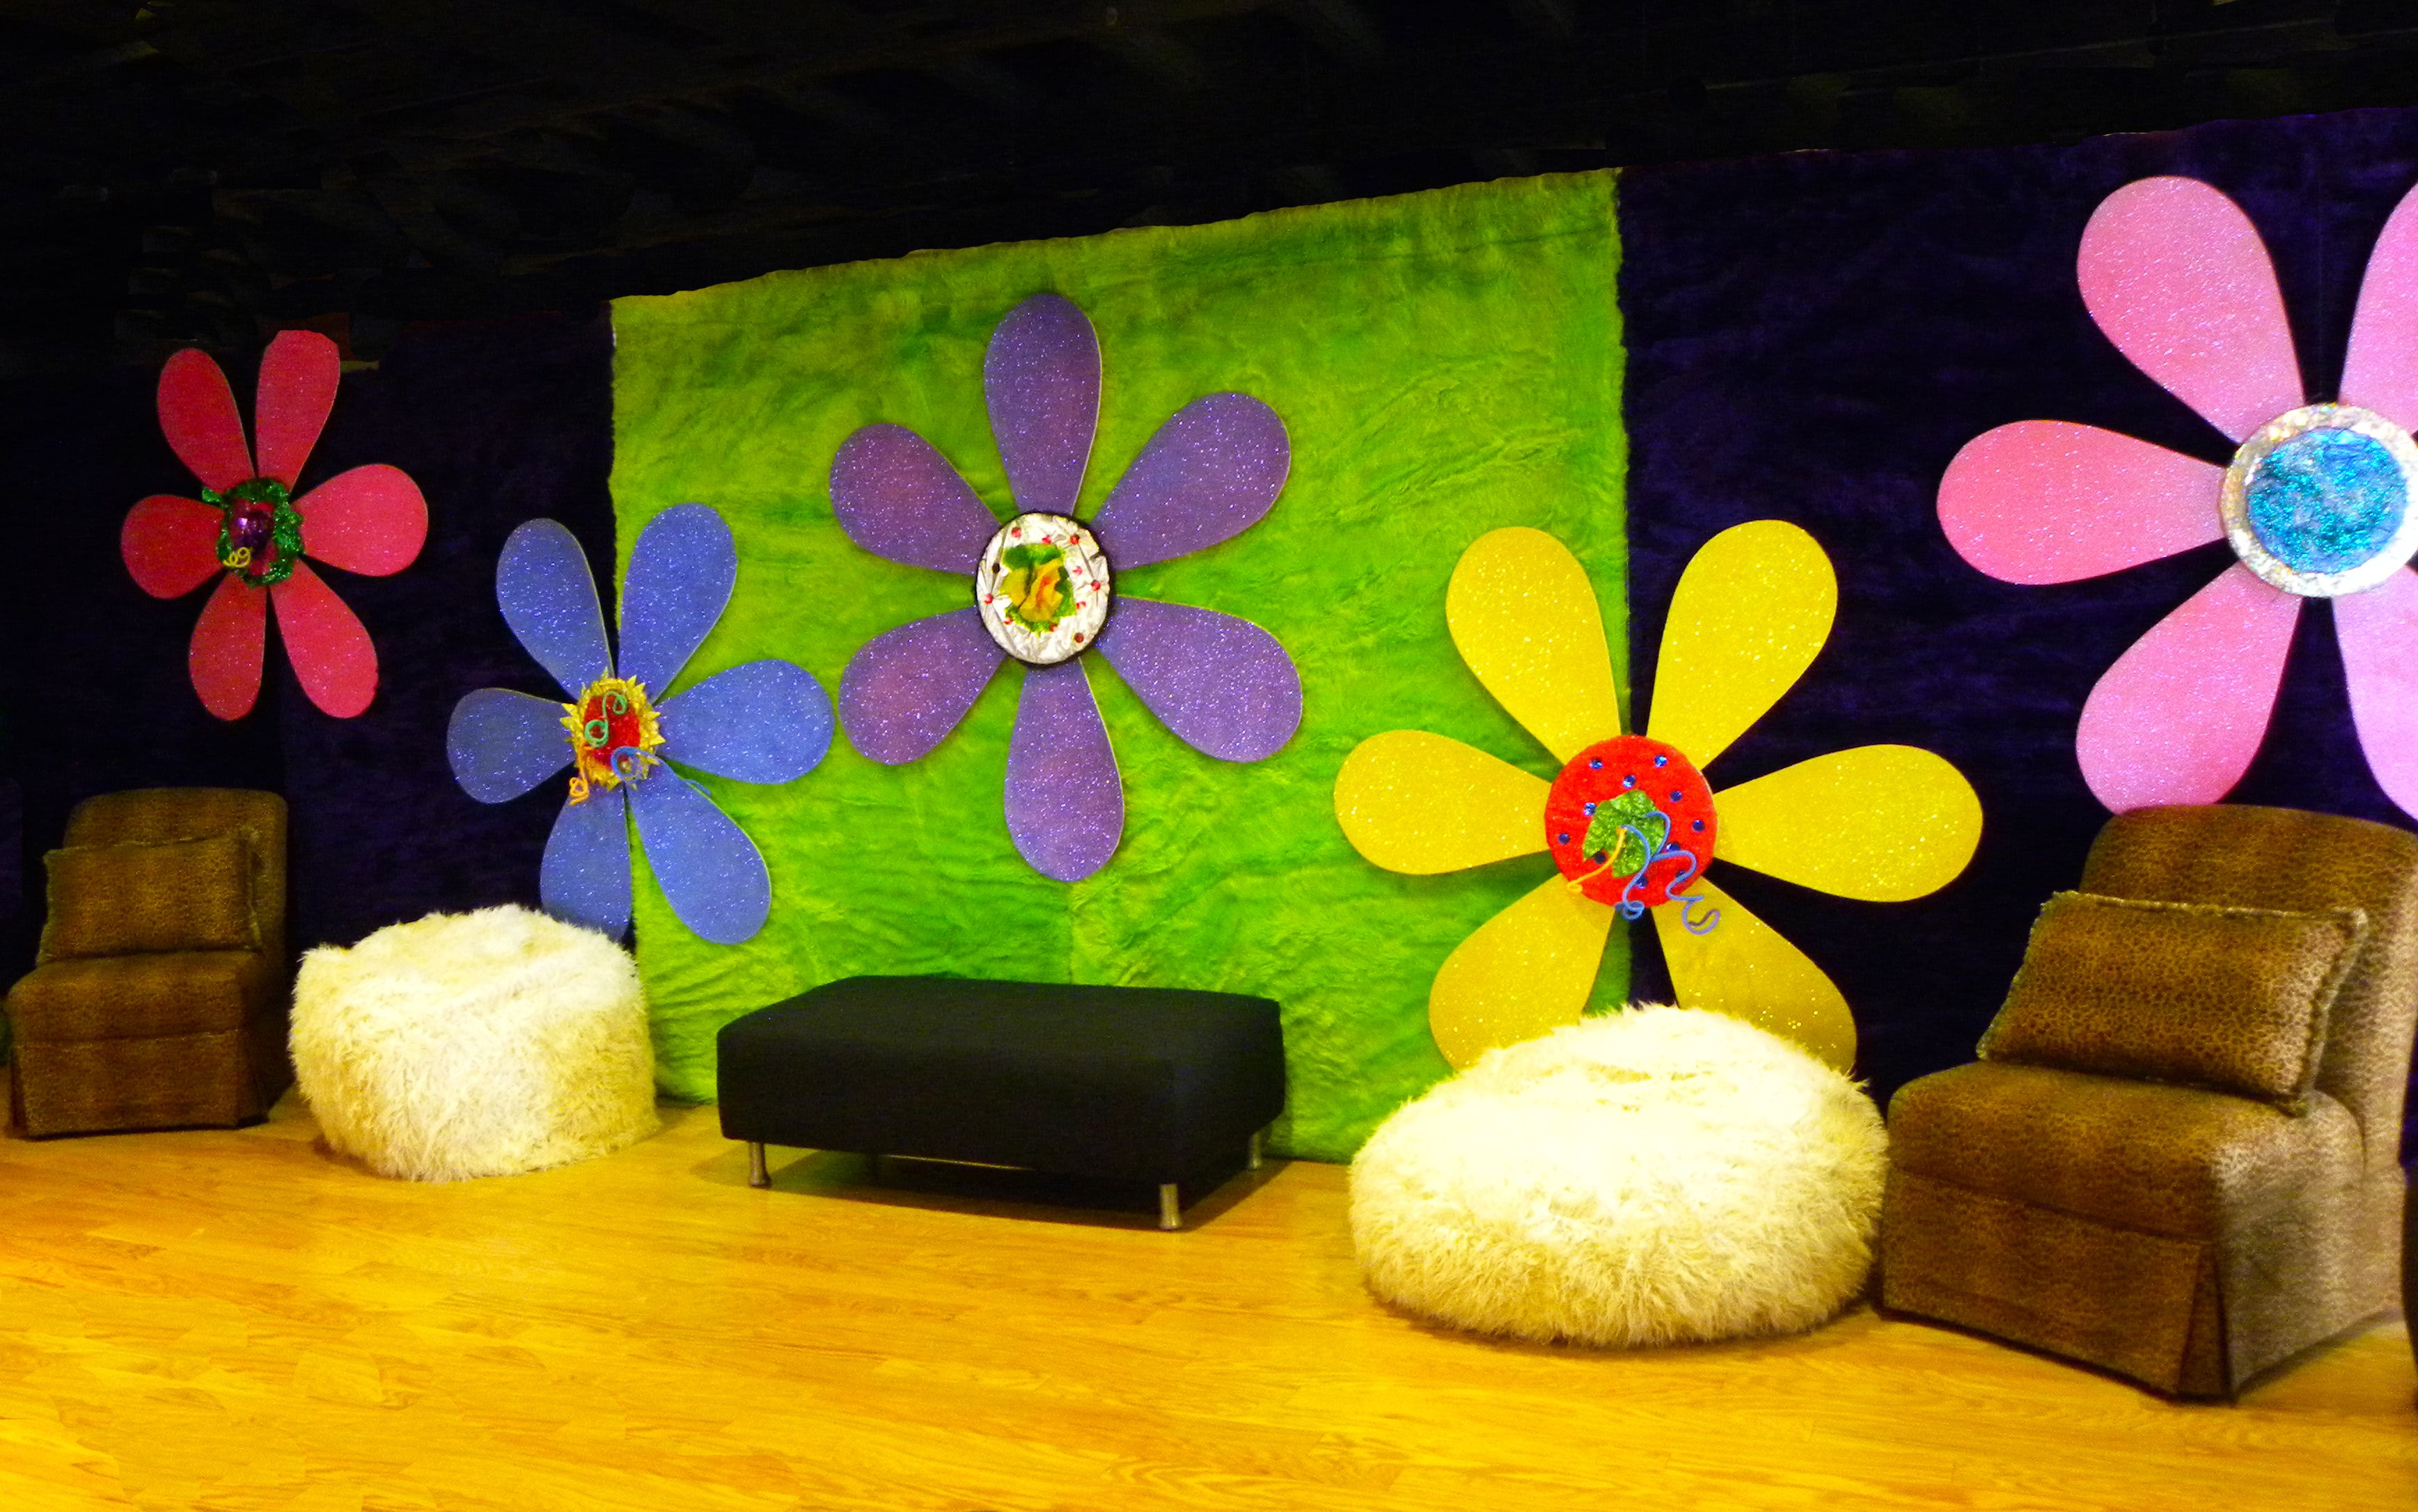 Groovy flower backdrop with retro seating 70 39 s party for 70s decoration